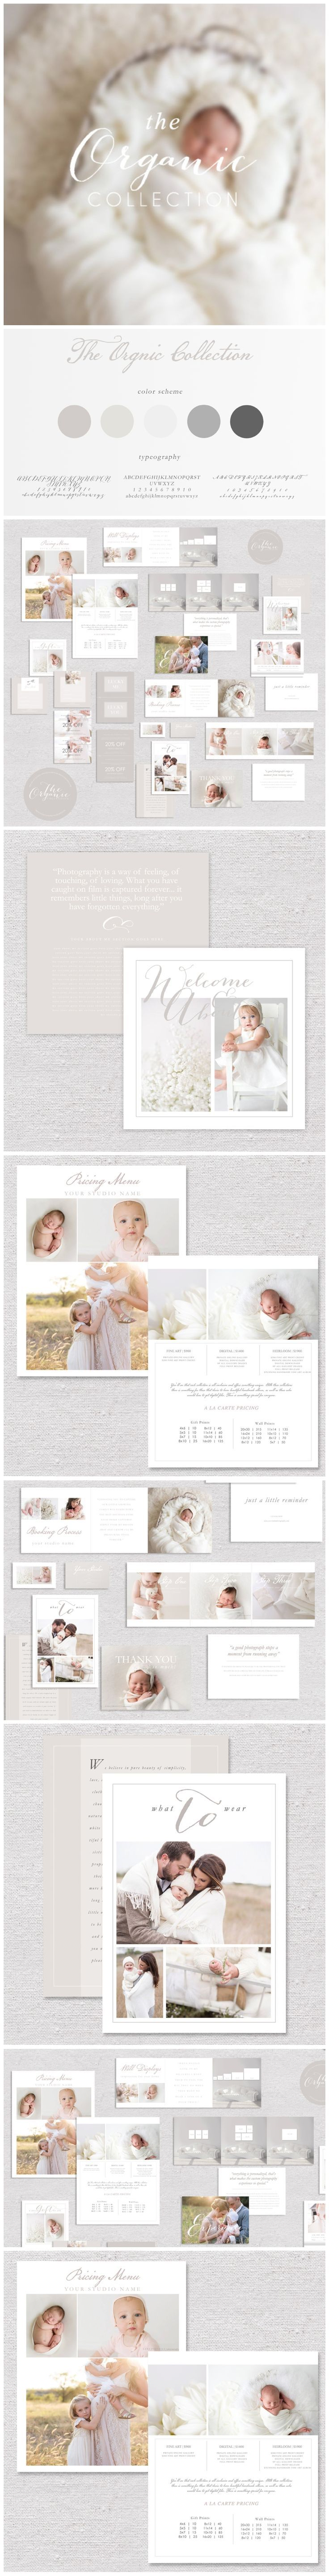 CLIENT WELCOME PACKET & MARKETING SET FOR PROFESSIONAL PHOTOGRAPHERS | THE ORGANIC COLLECTION  On Sale!!!!  Modern Market